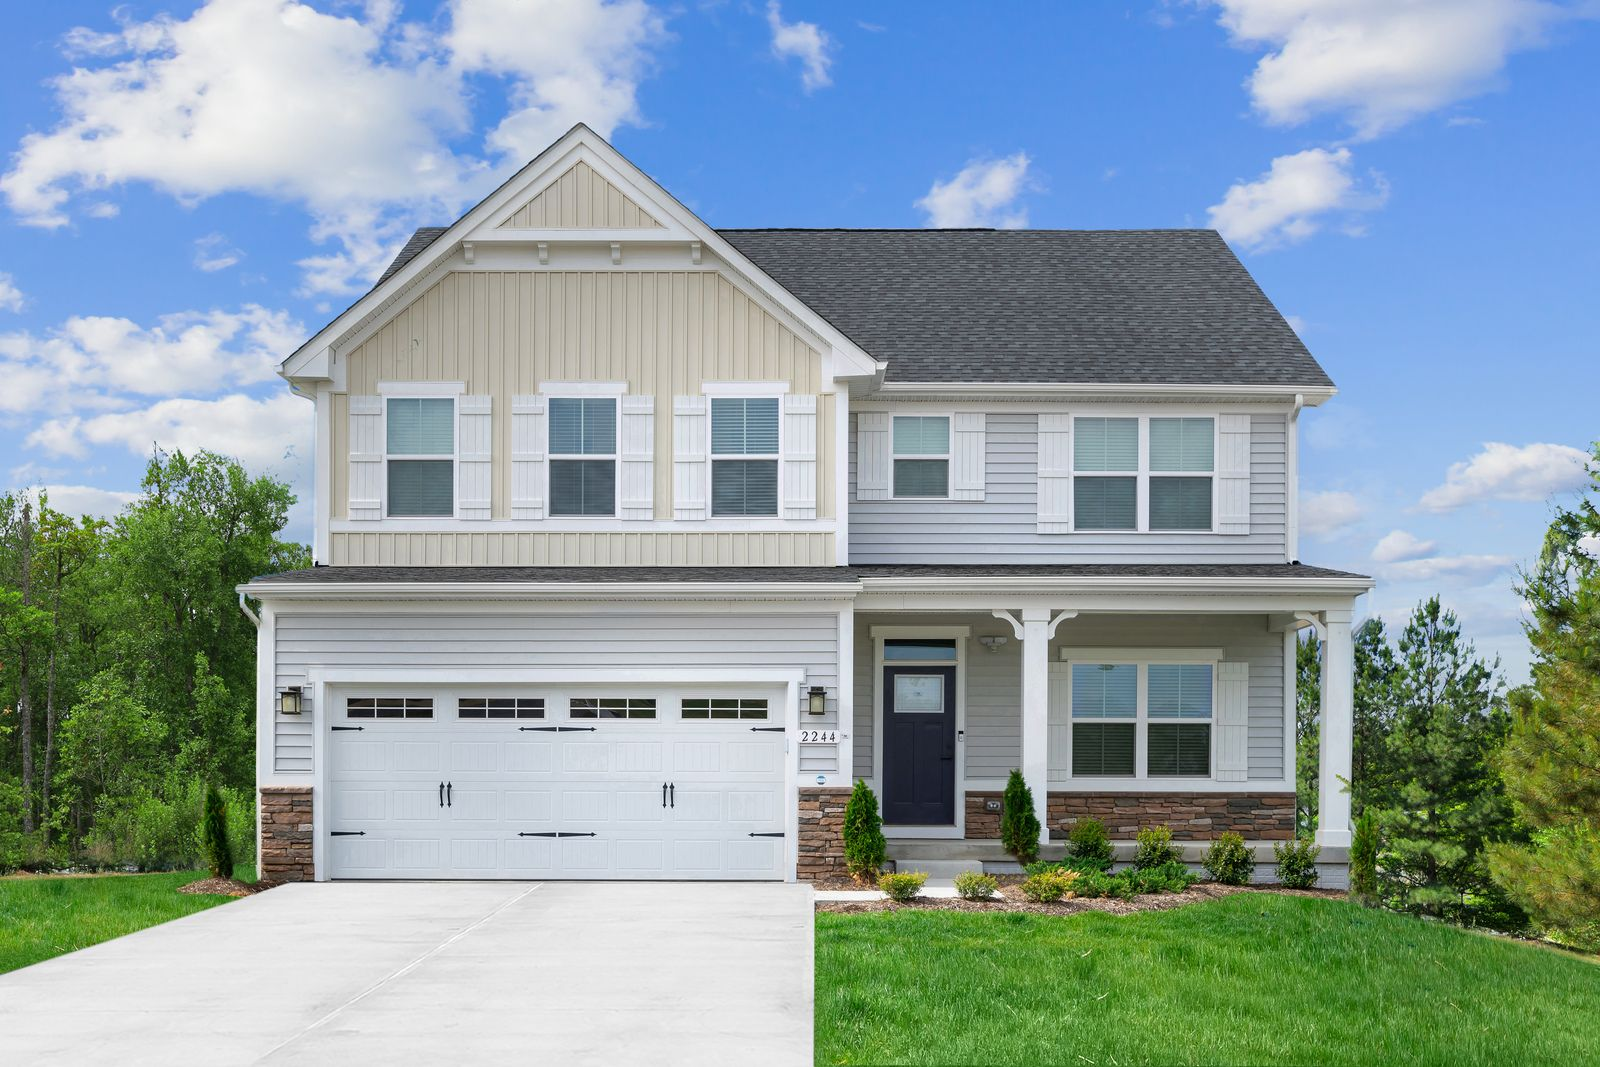 New Never Looked So Good:Own a brand new home with easy access to downtown Pittsburgh and the Heart of Cranberry.Schedule your appointment for Jackson Ridge today!